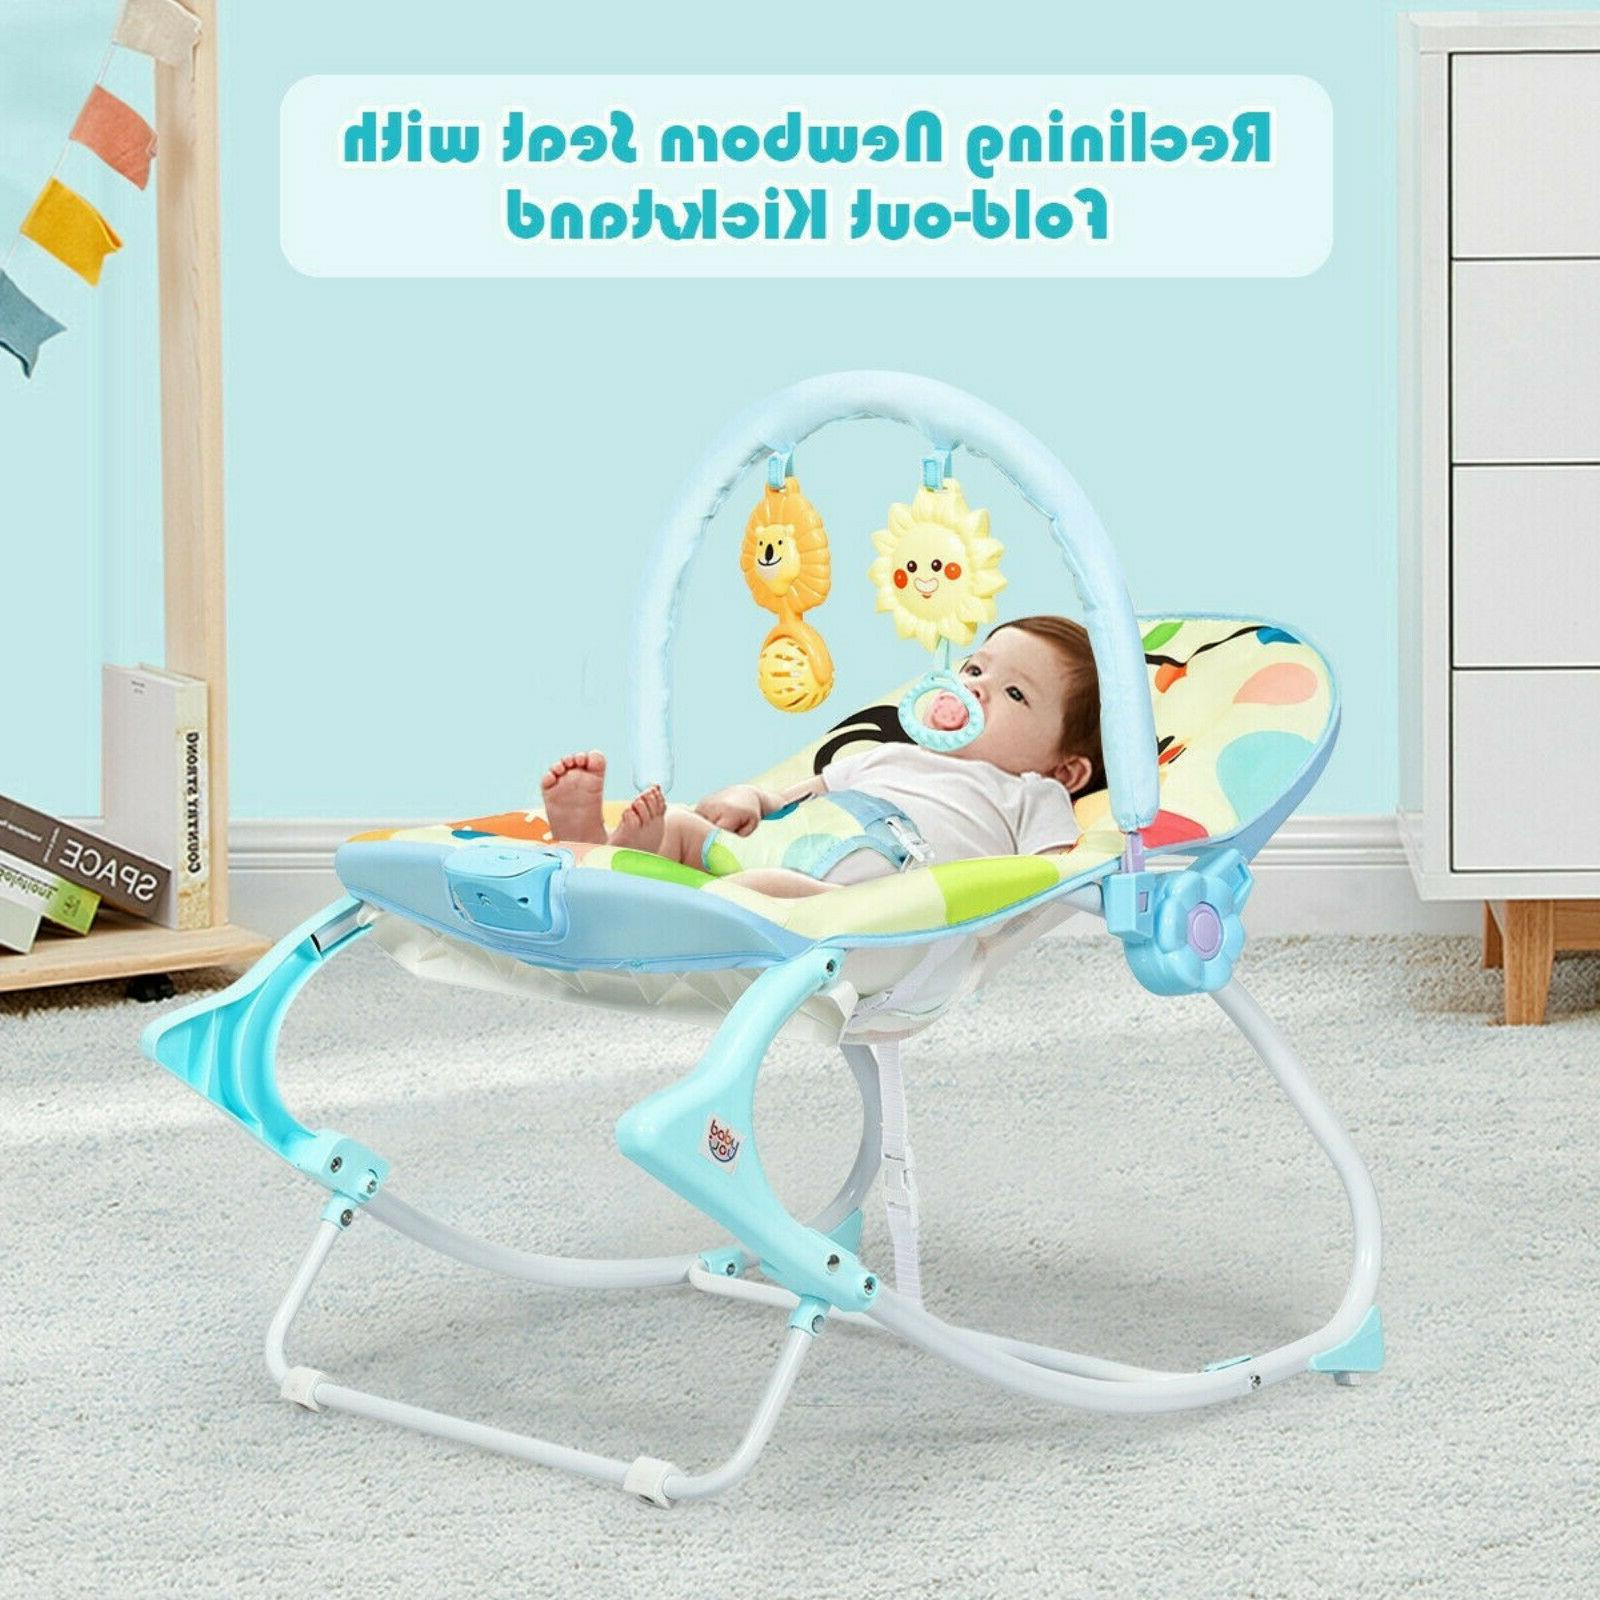 Baby Bouncer Bed Rocking Chair Adjustable Portable